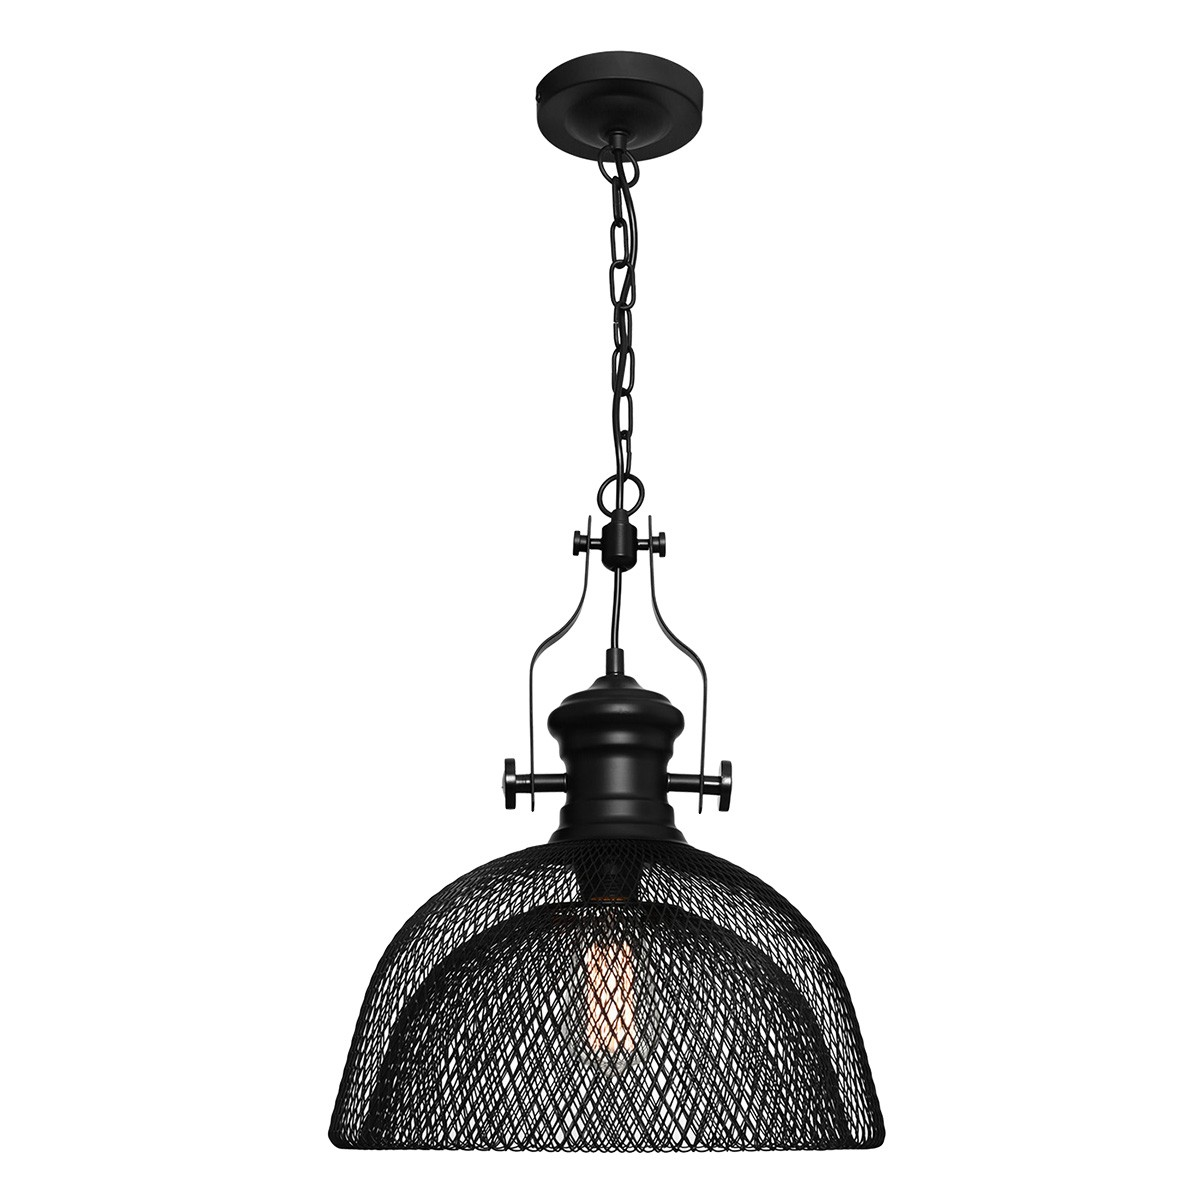 Argyle Industrial Metal Mesh Pendant Light, Large